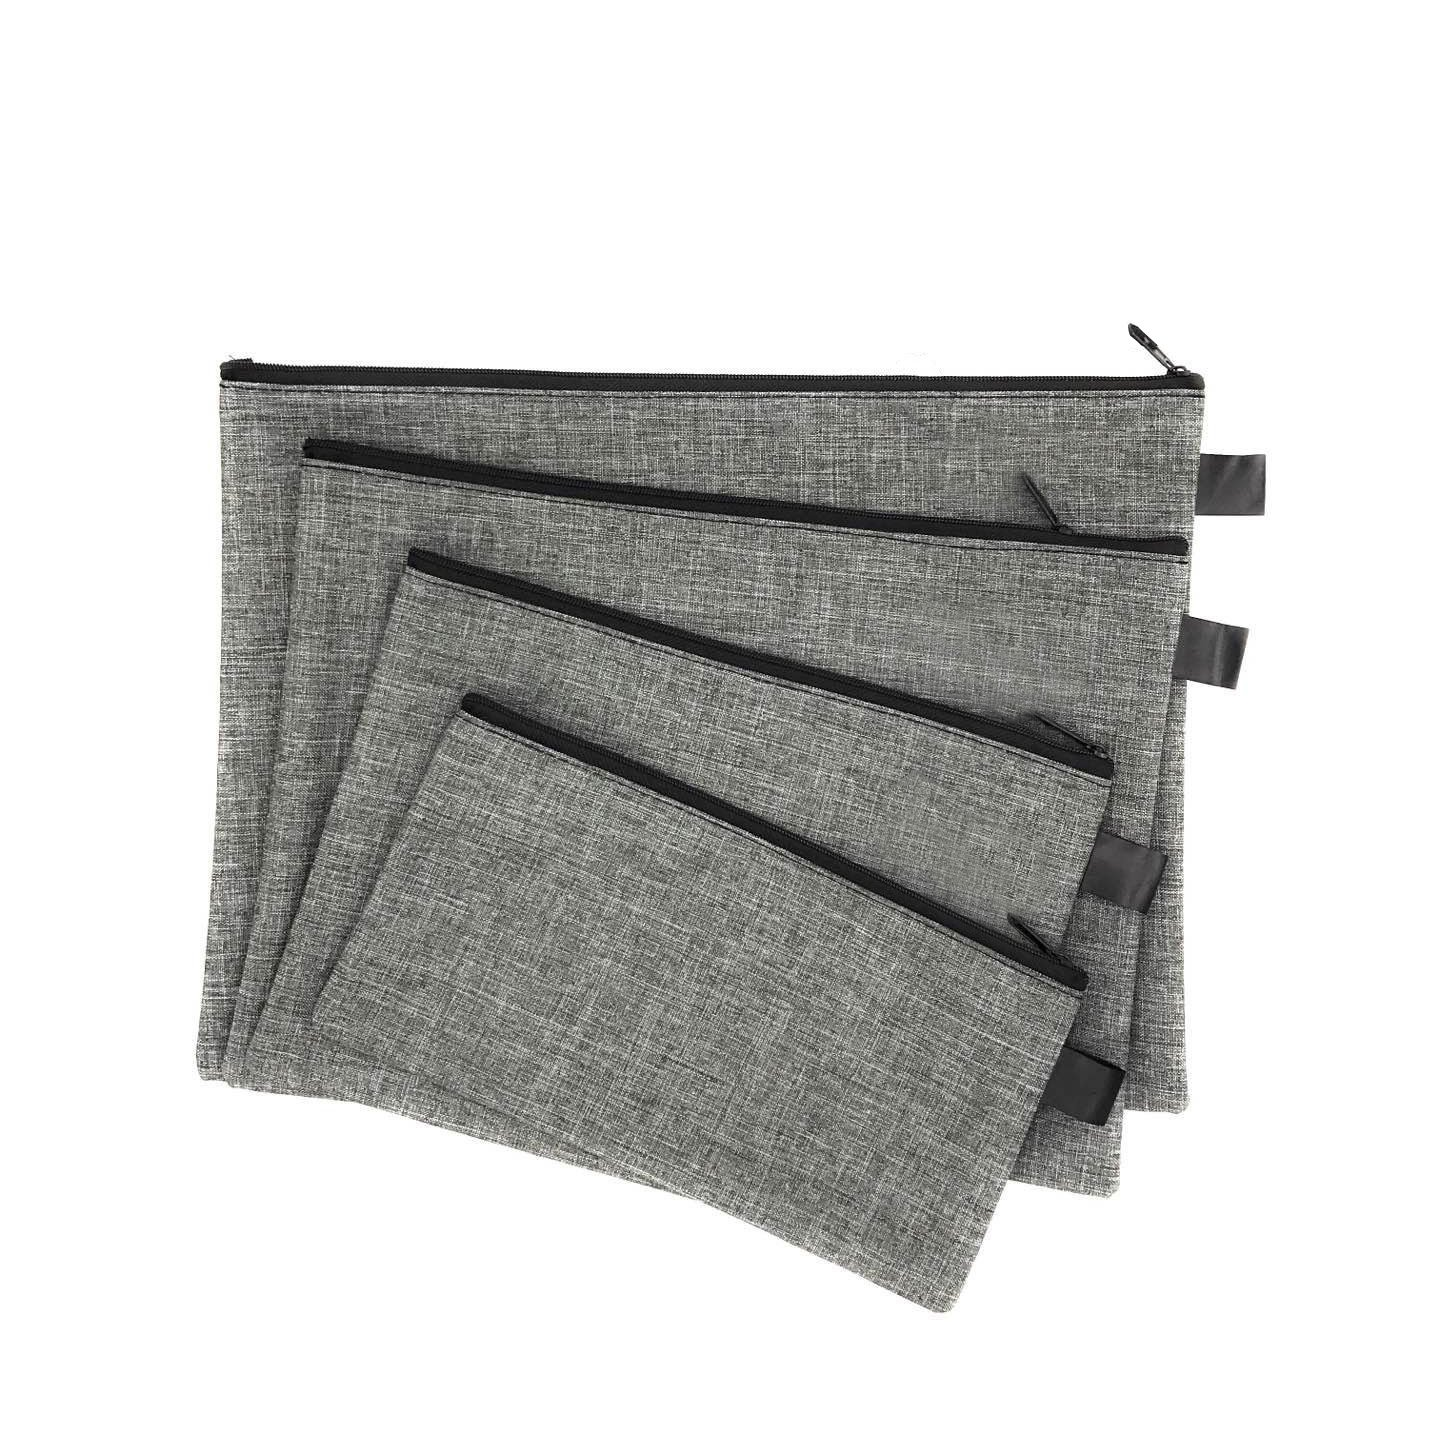 Utility Zipper Bags For Cash, Receipts, Paperwork, Cards, 4-Size Bags, Gray